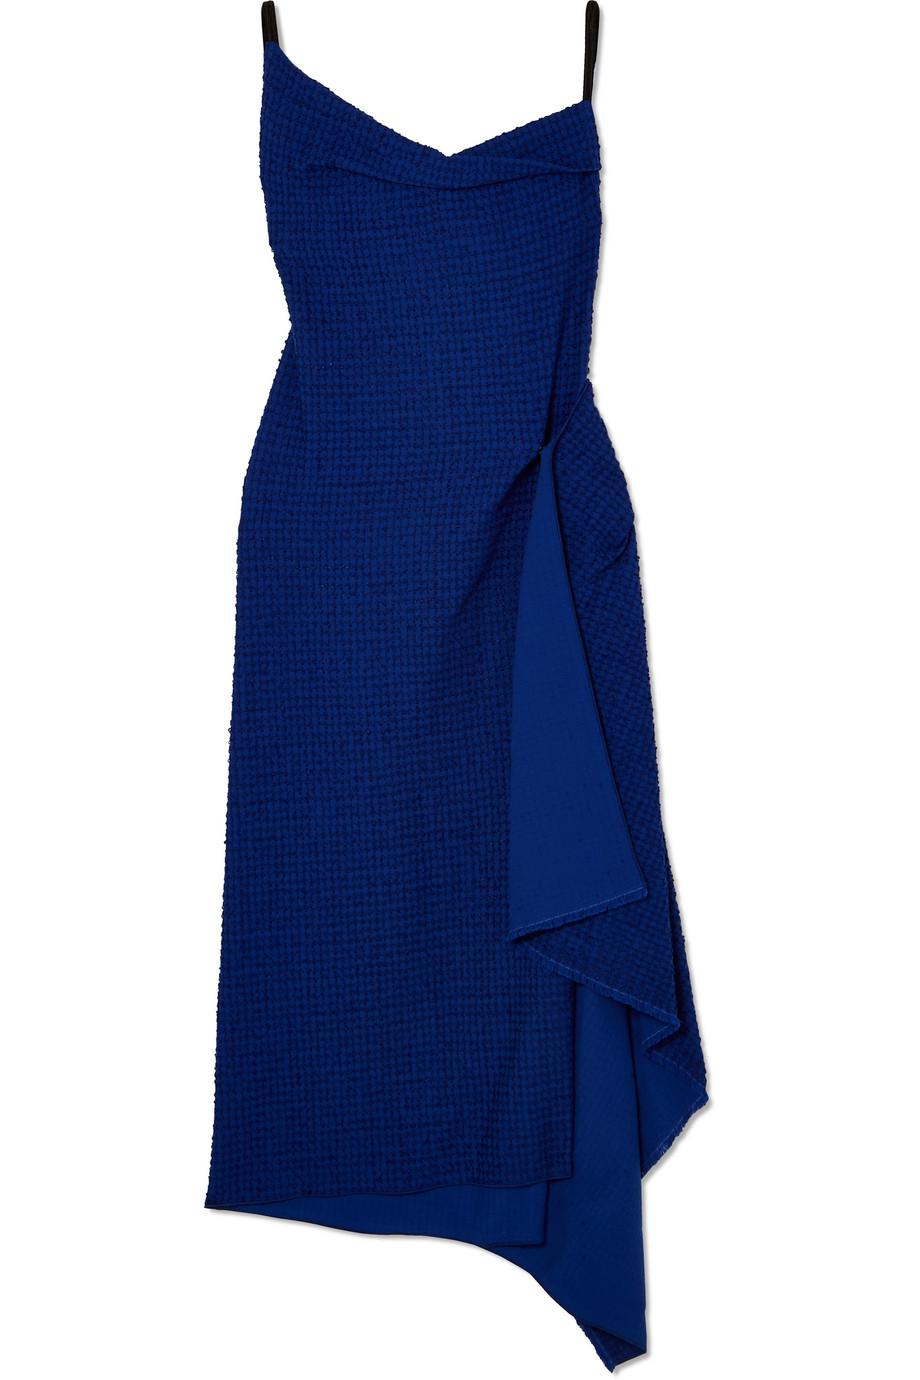 Draped Cotton-blend Bouclé Dress - Blue Roland Mouret RcFywqdx